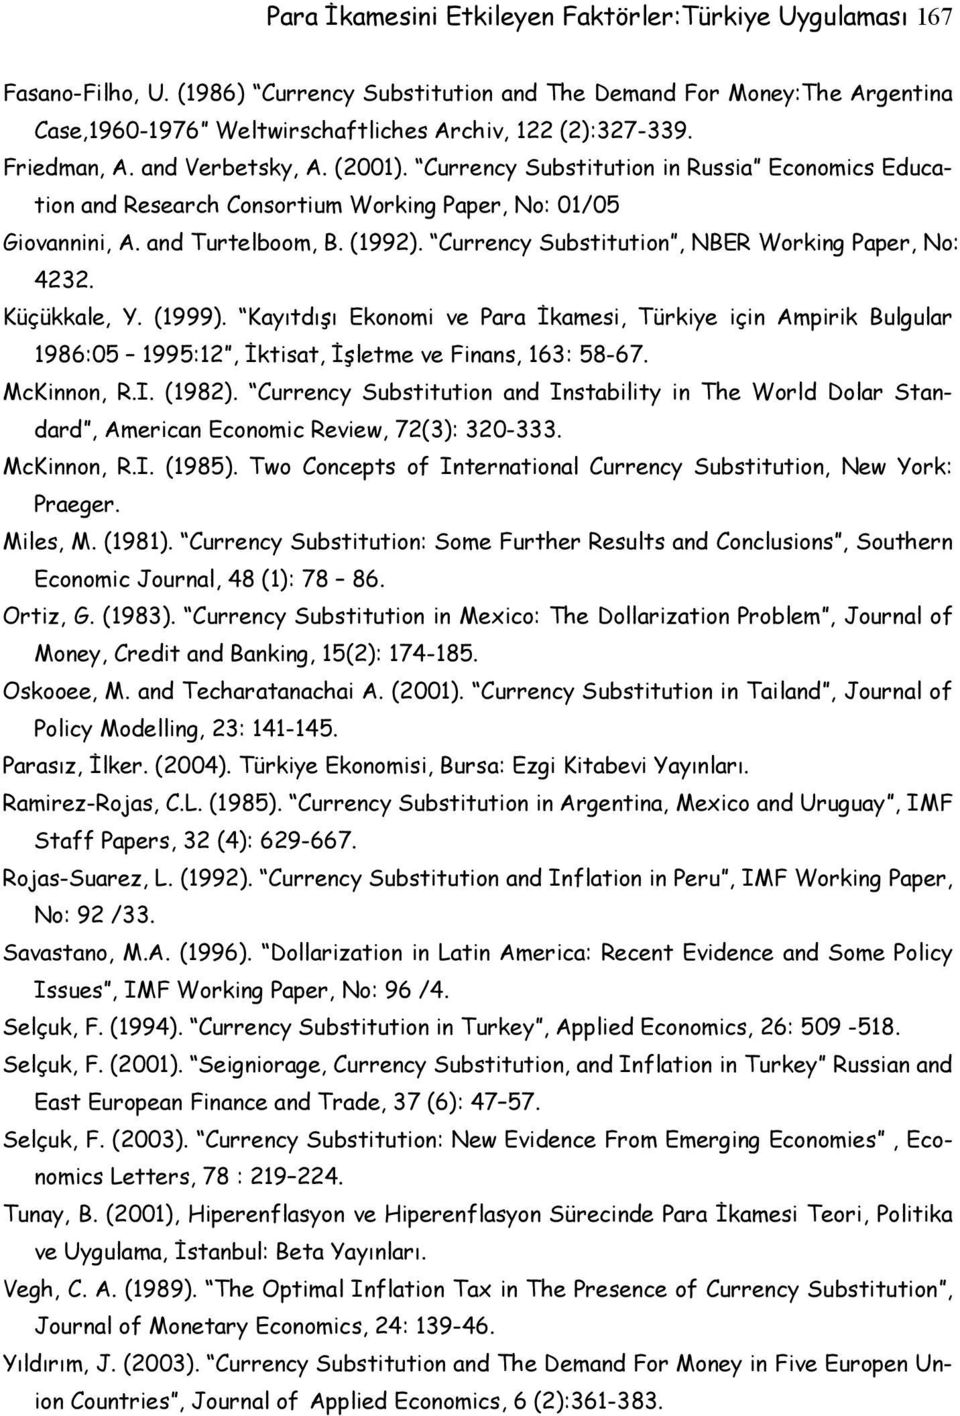 Currency Substitution in Russia Economics Education and Research Consortium Working Paper, No: 01/05 Giovannini, A. and Turtelboom, B. (1992). Currency Substitution, NBER Working Paper, No: 4232.